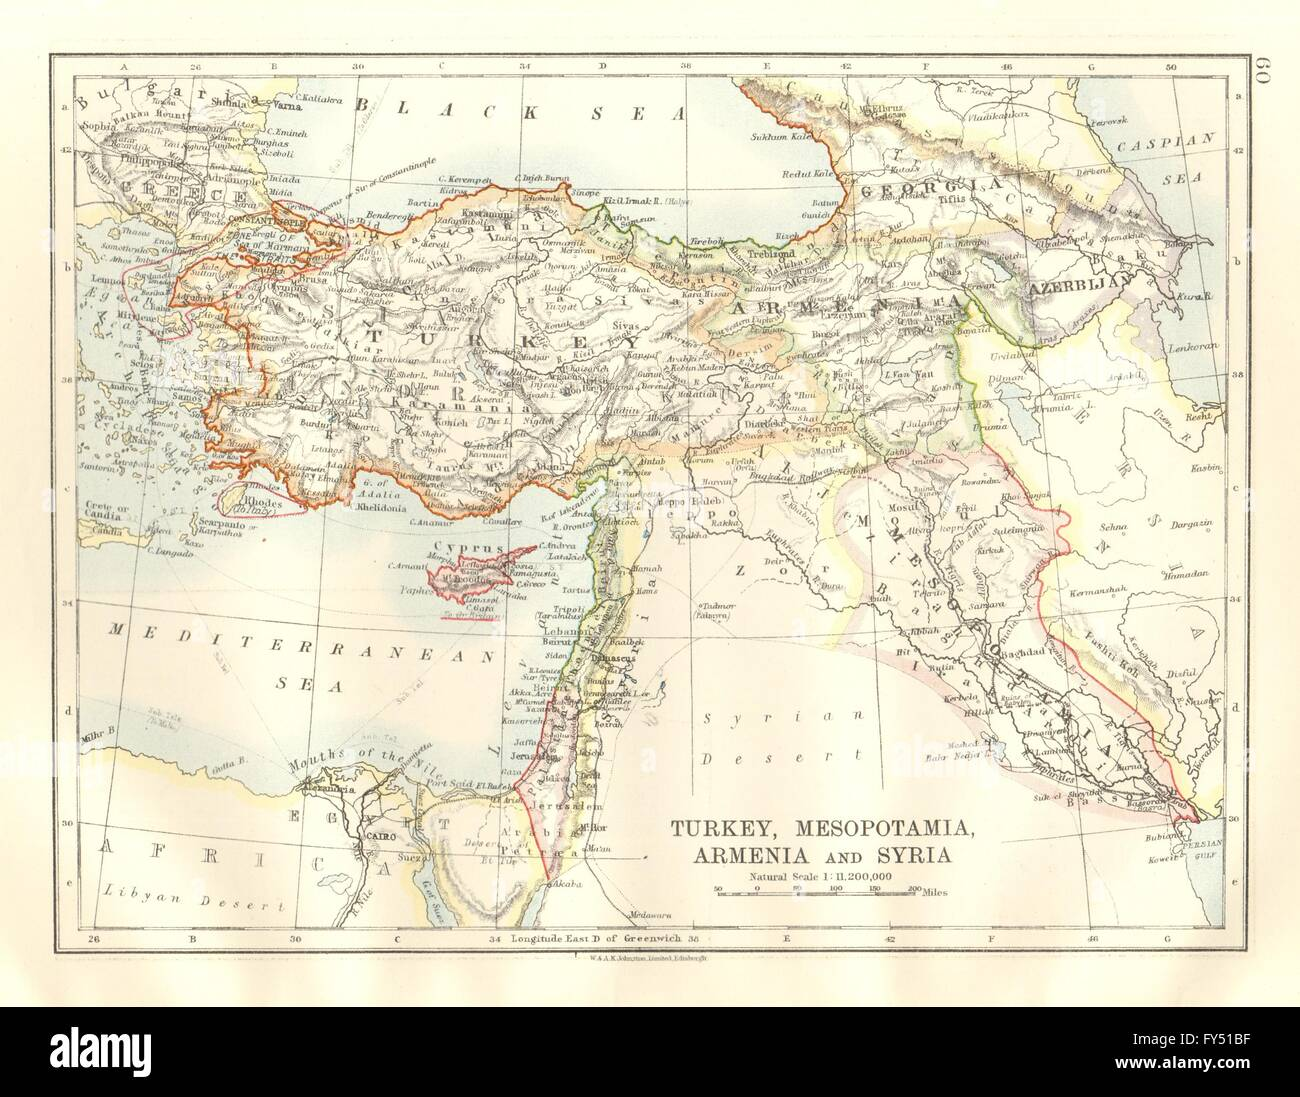 MIDDLE EAST. Treaty of Sevres. Armenia. Zone of Straits Stock Photo ...